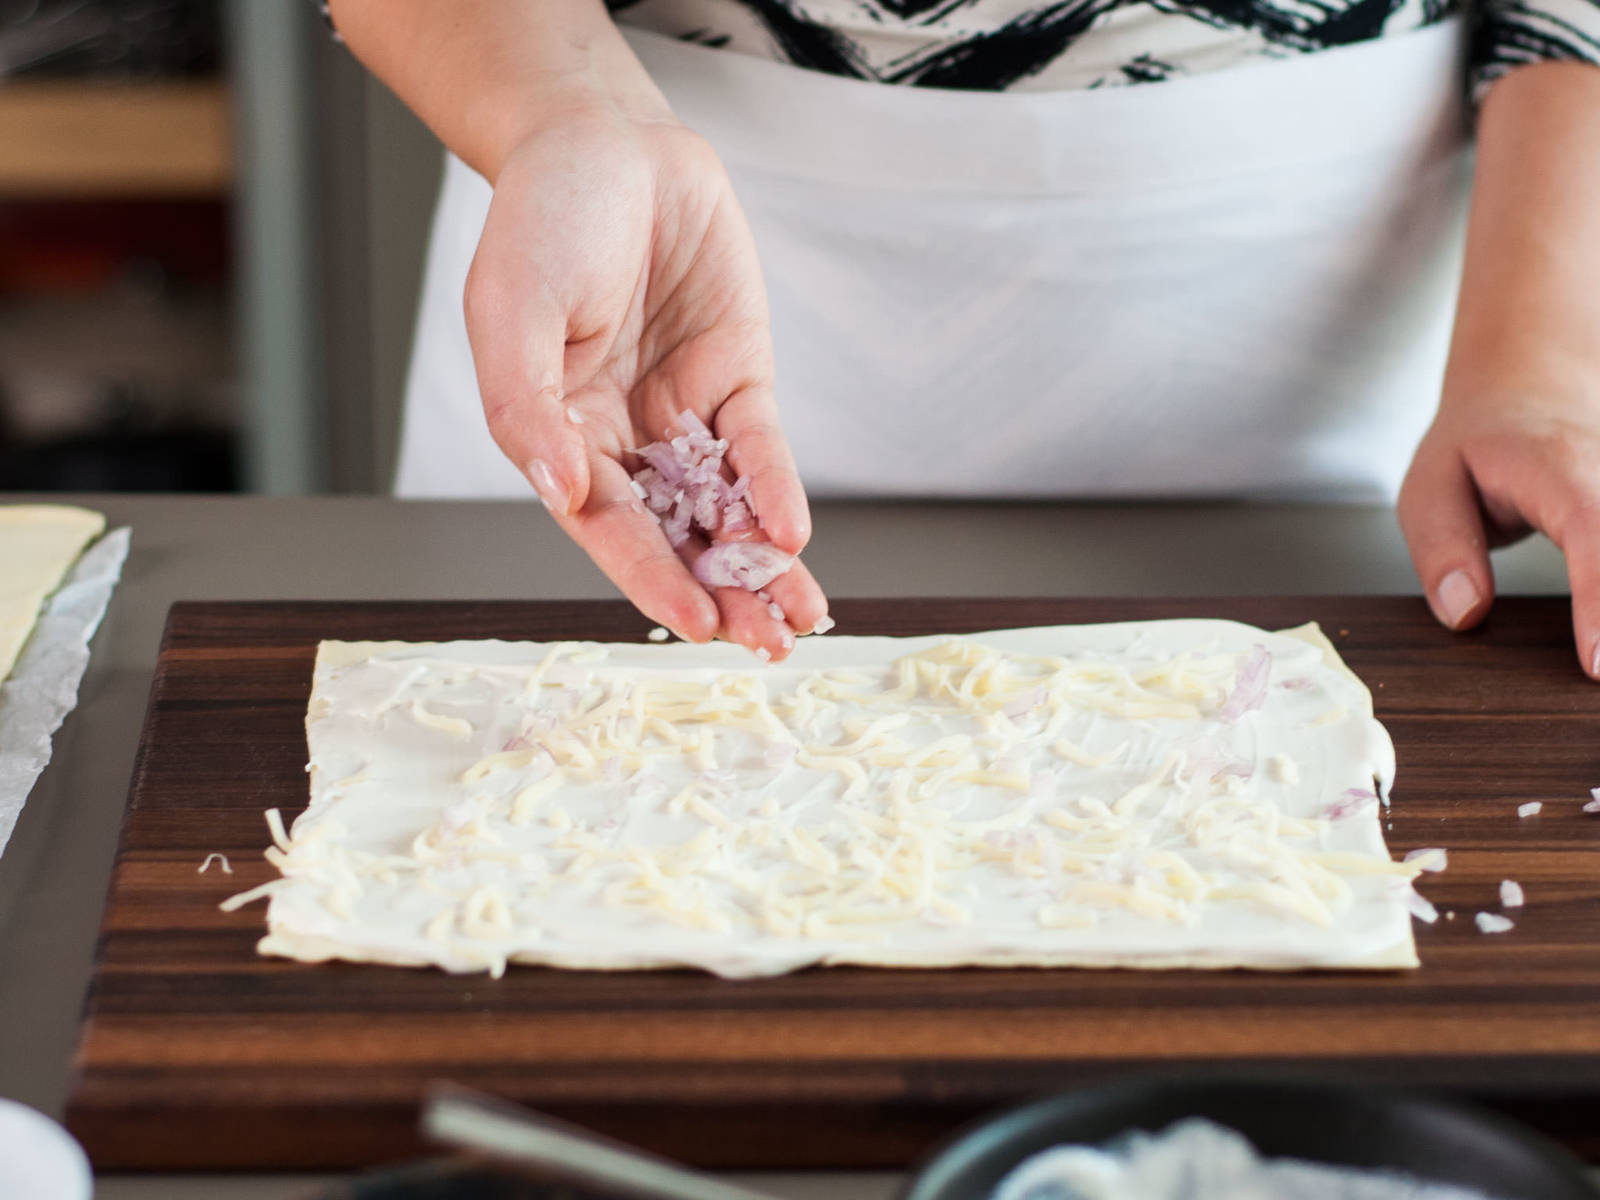 Halve puff pastry sheet. Spread sour cream over one half. Sprinkle cheese and shallots on top. Season with salt and pepper.